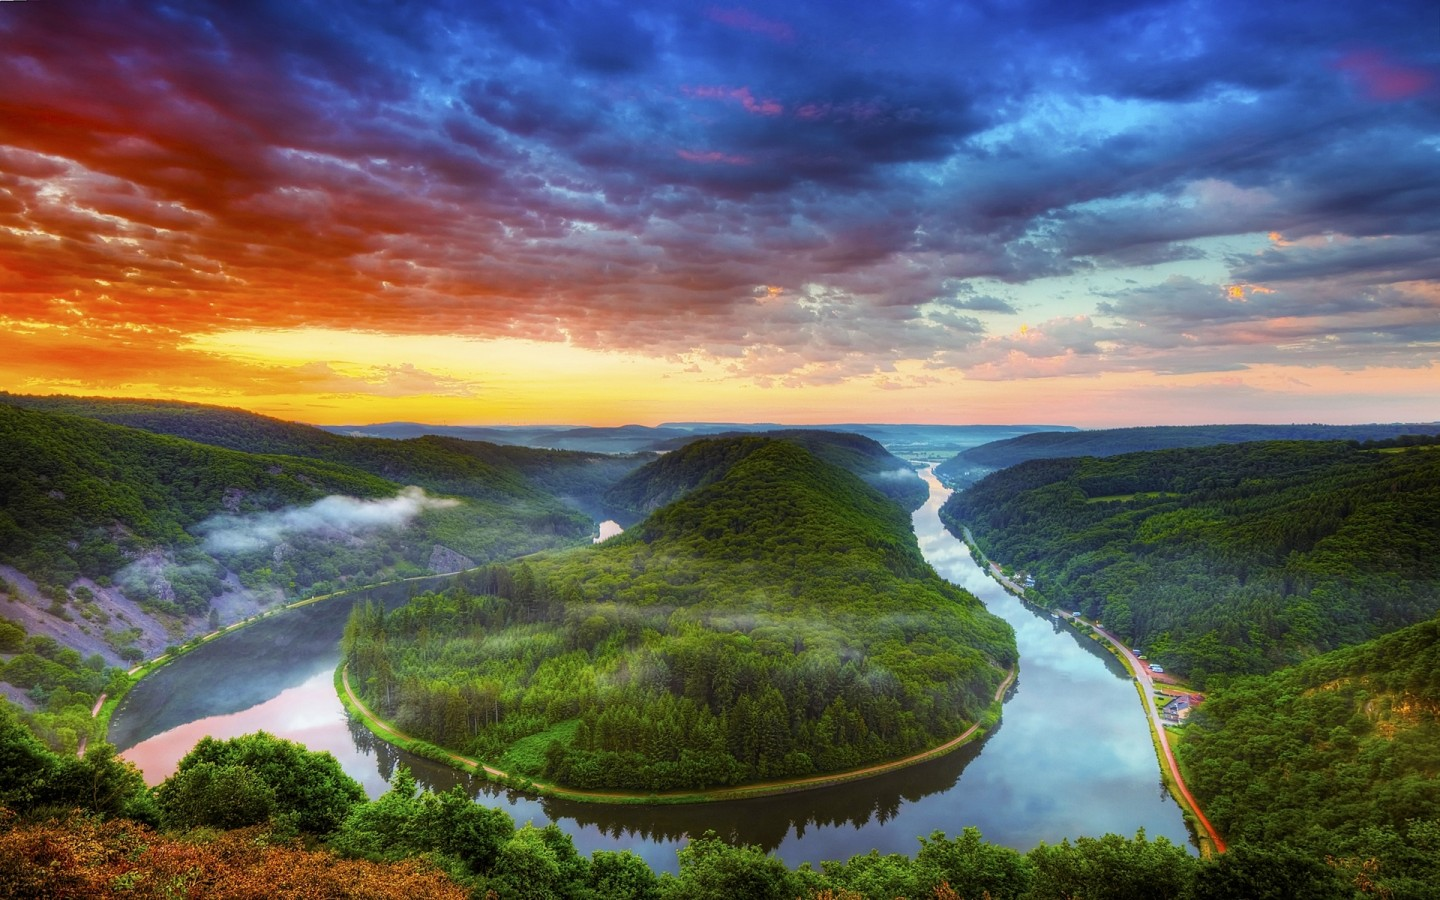 saarschleife-saar-river-mettlach-germany-clouds-sunset-forest-fog-nature